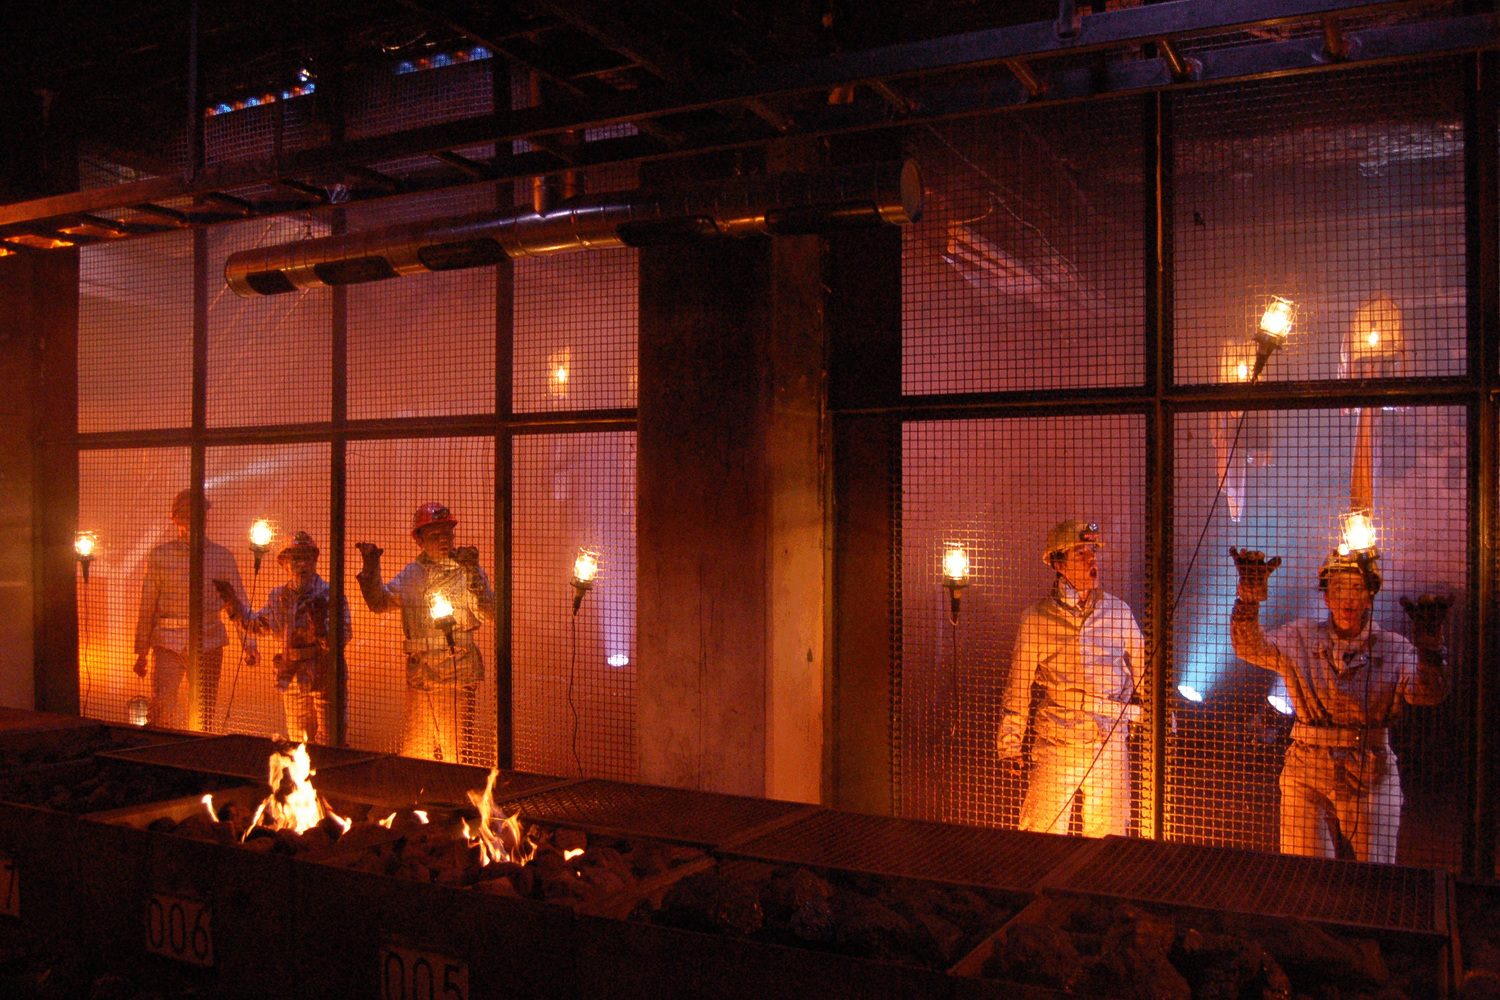 5 performers dressed as miners stand behind a meshed wall looking at a furnace full of fire